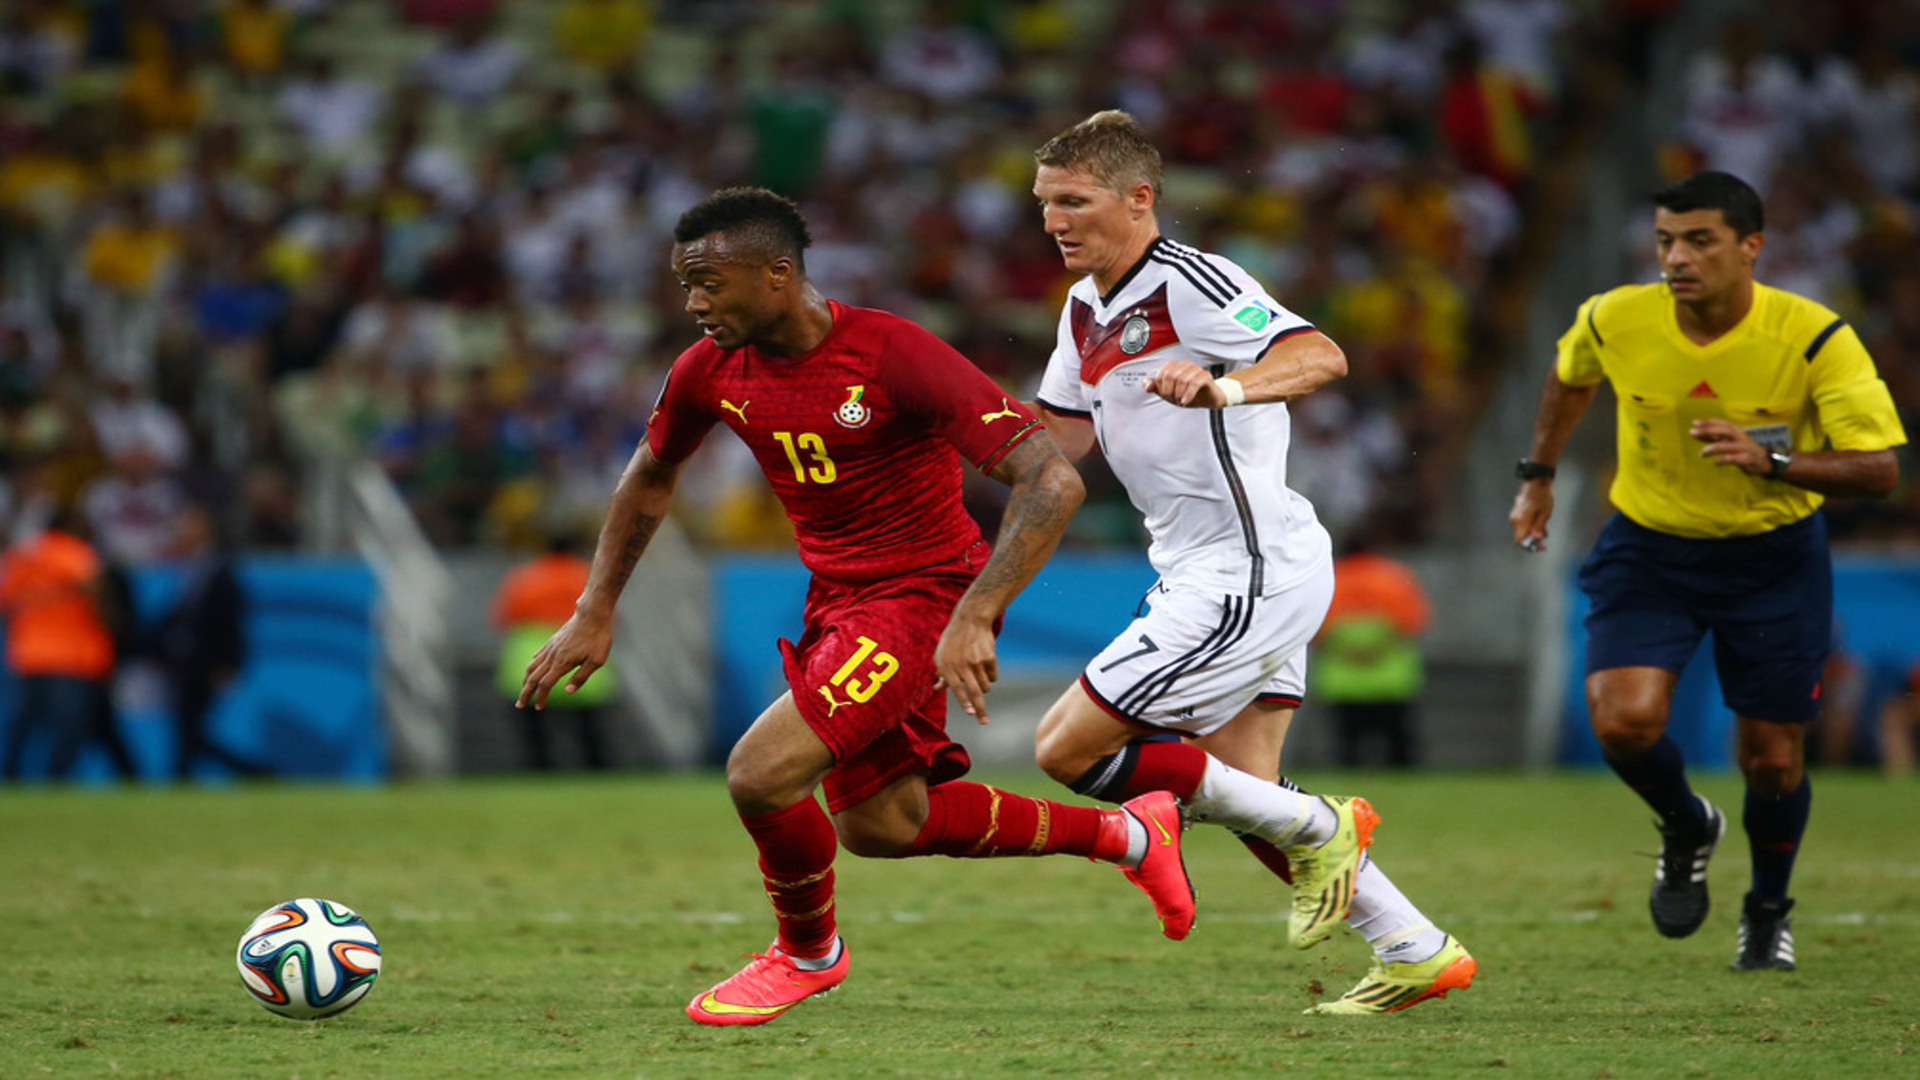 Jordan Ayew against Germany, 2014 World Cup